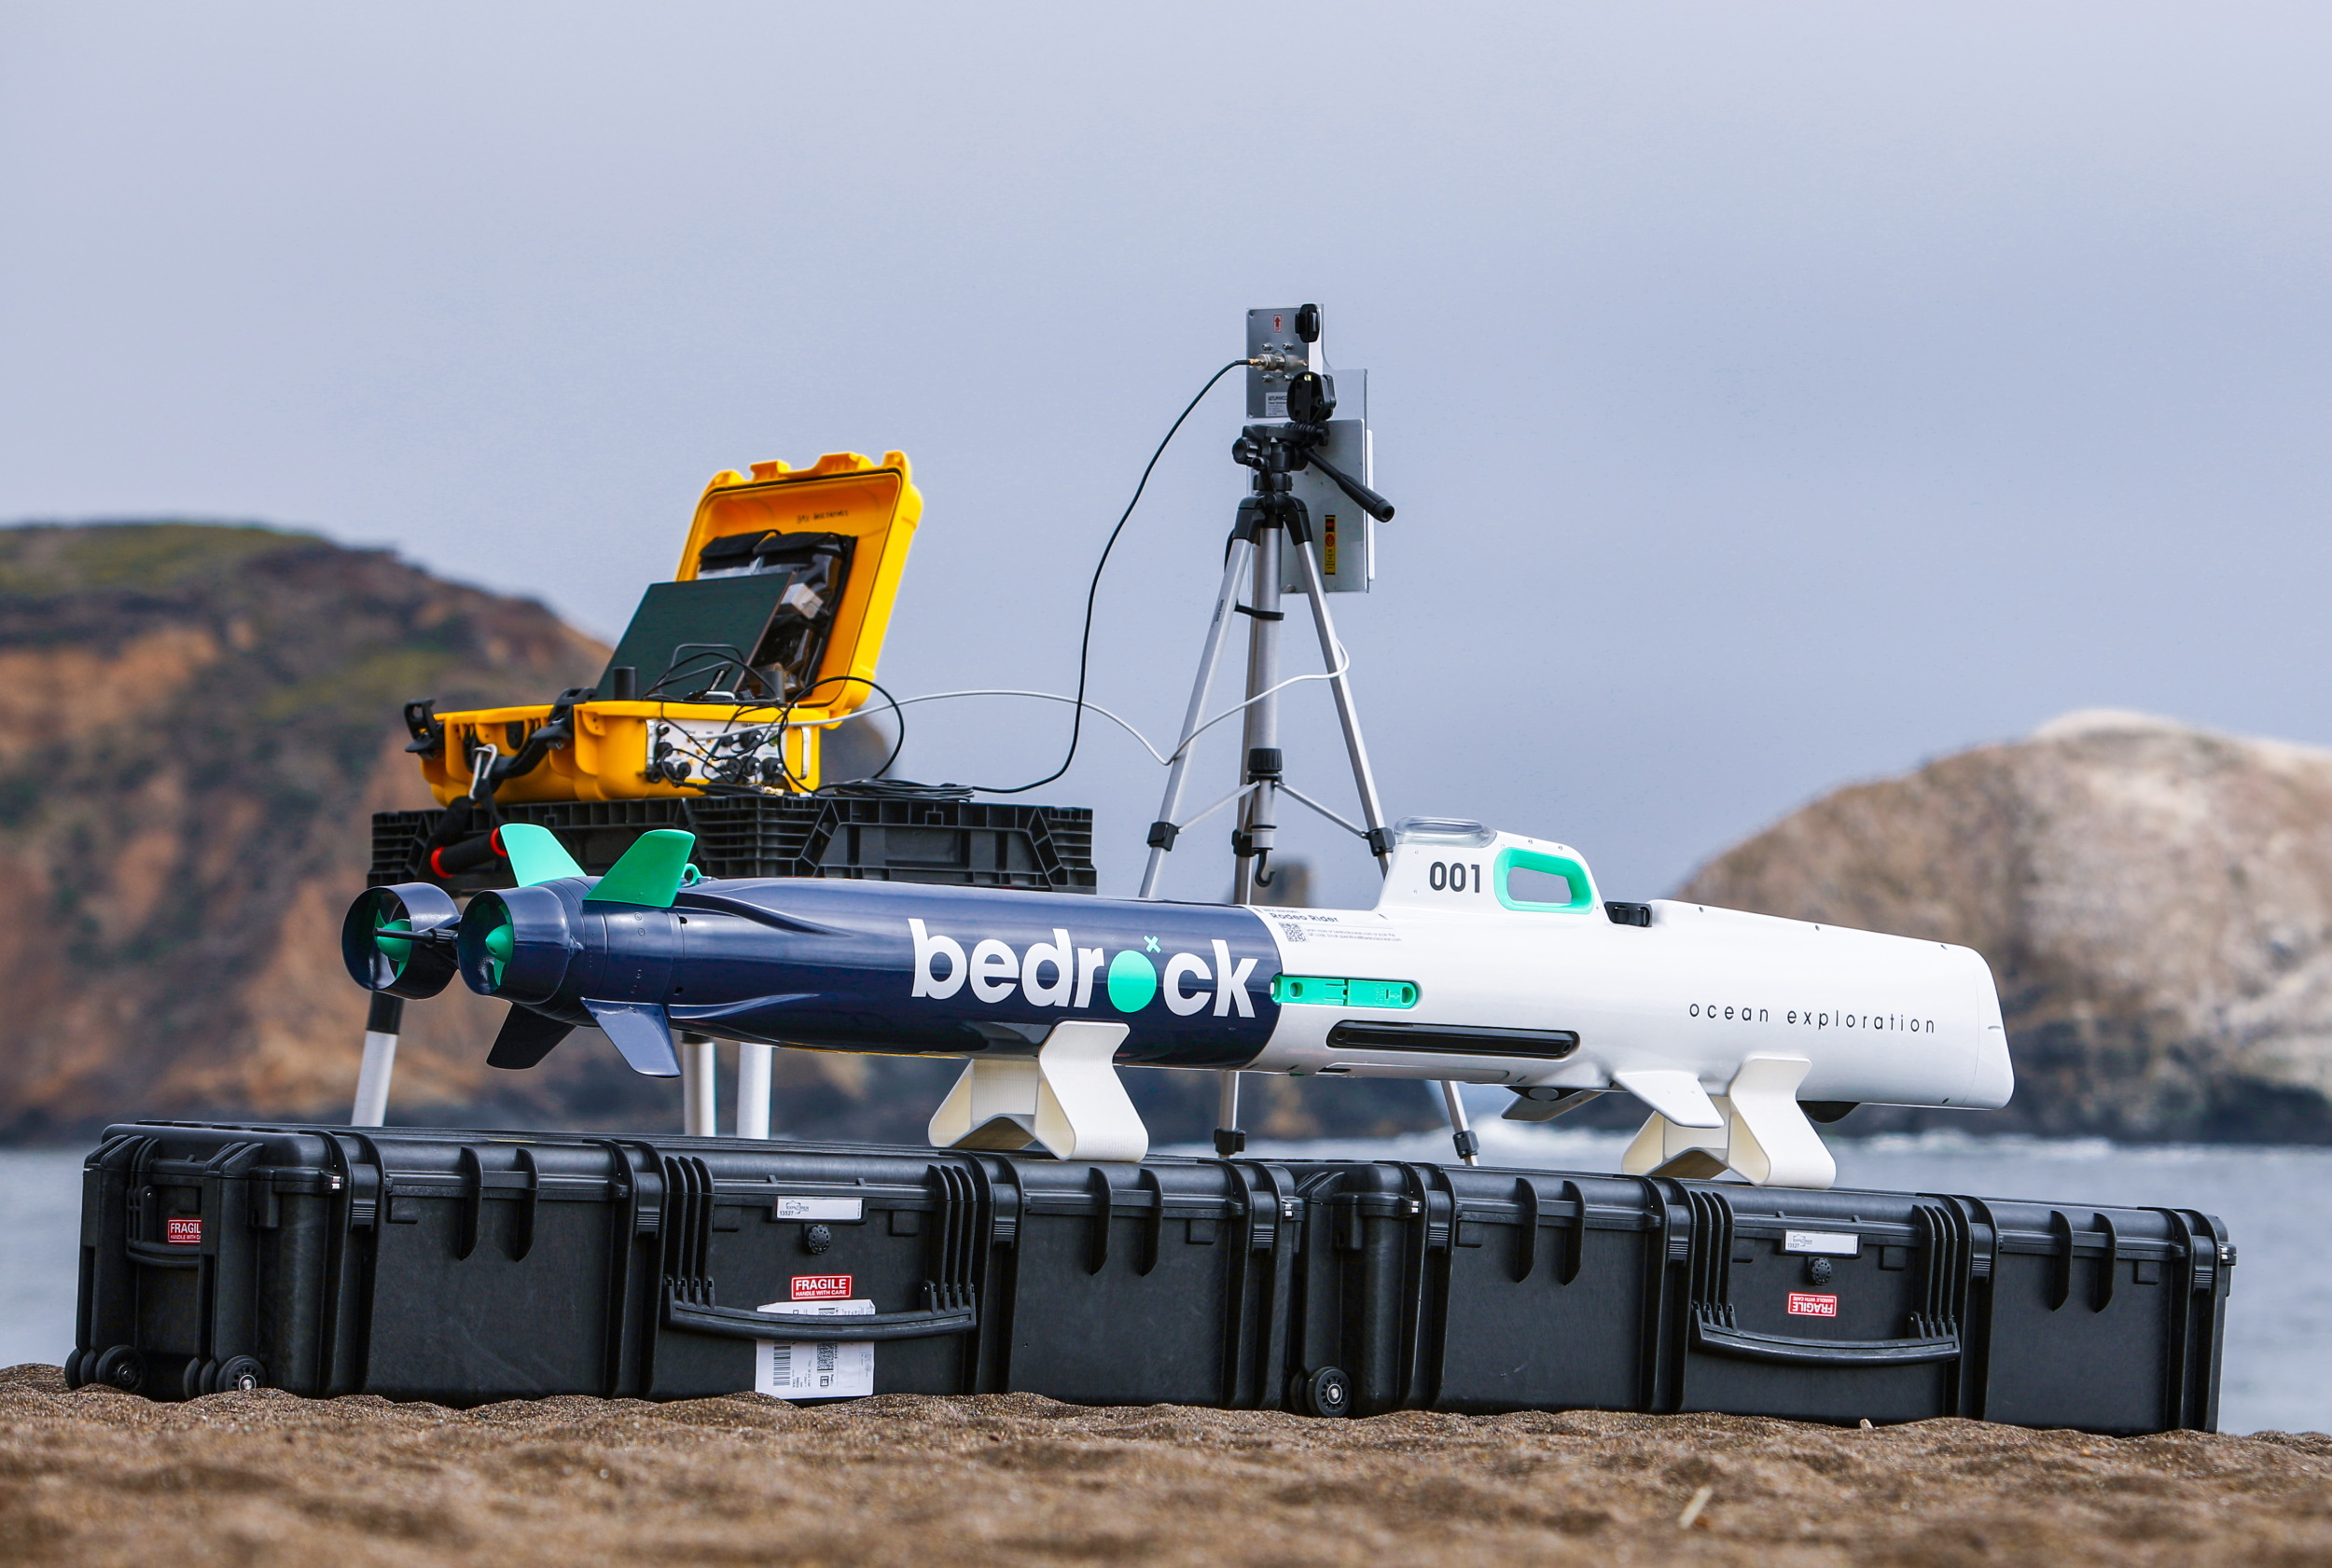 View of the AUV on a beach